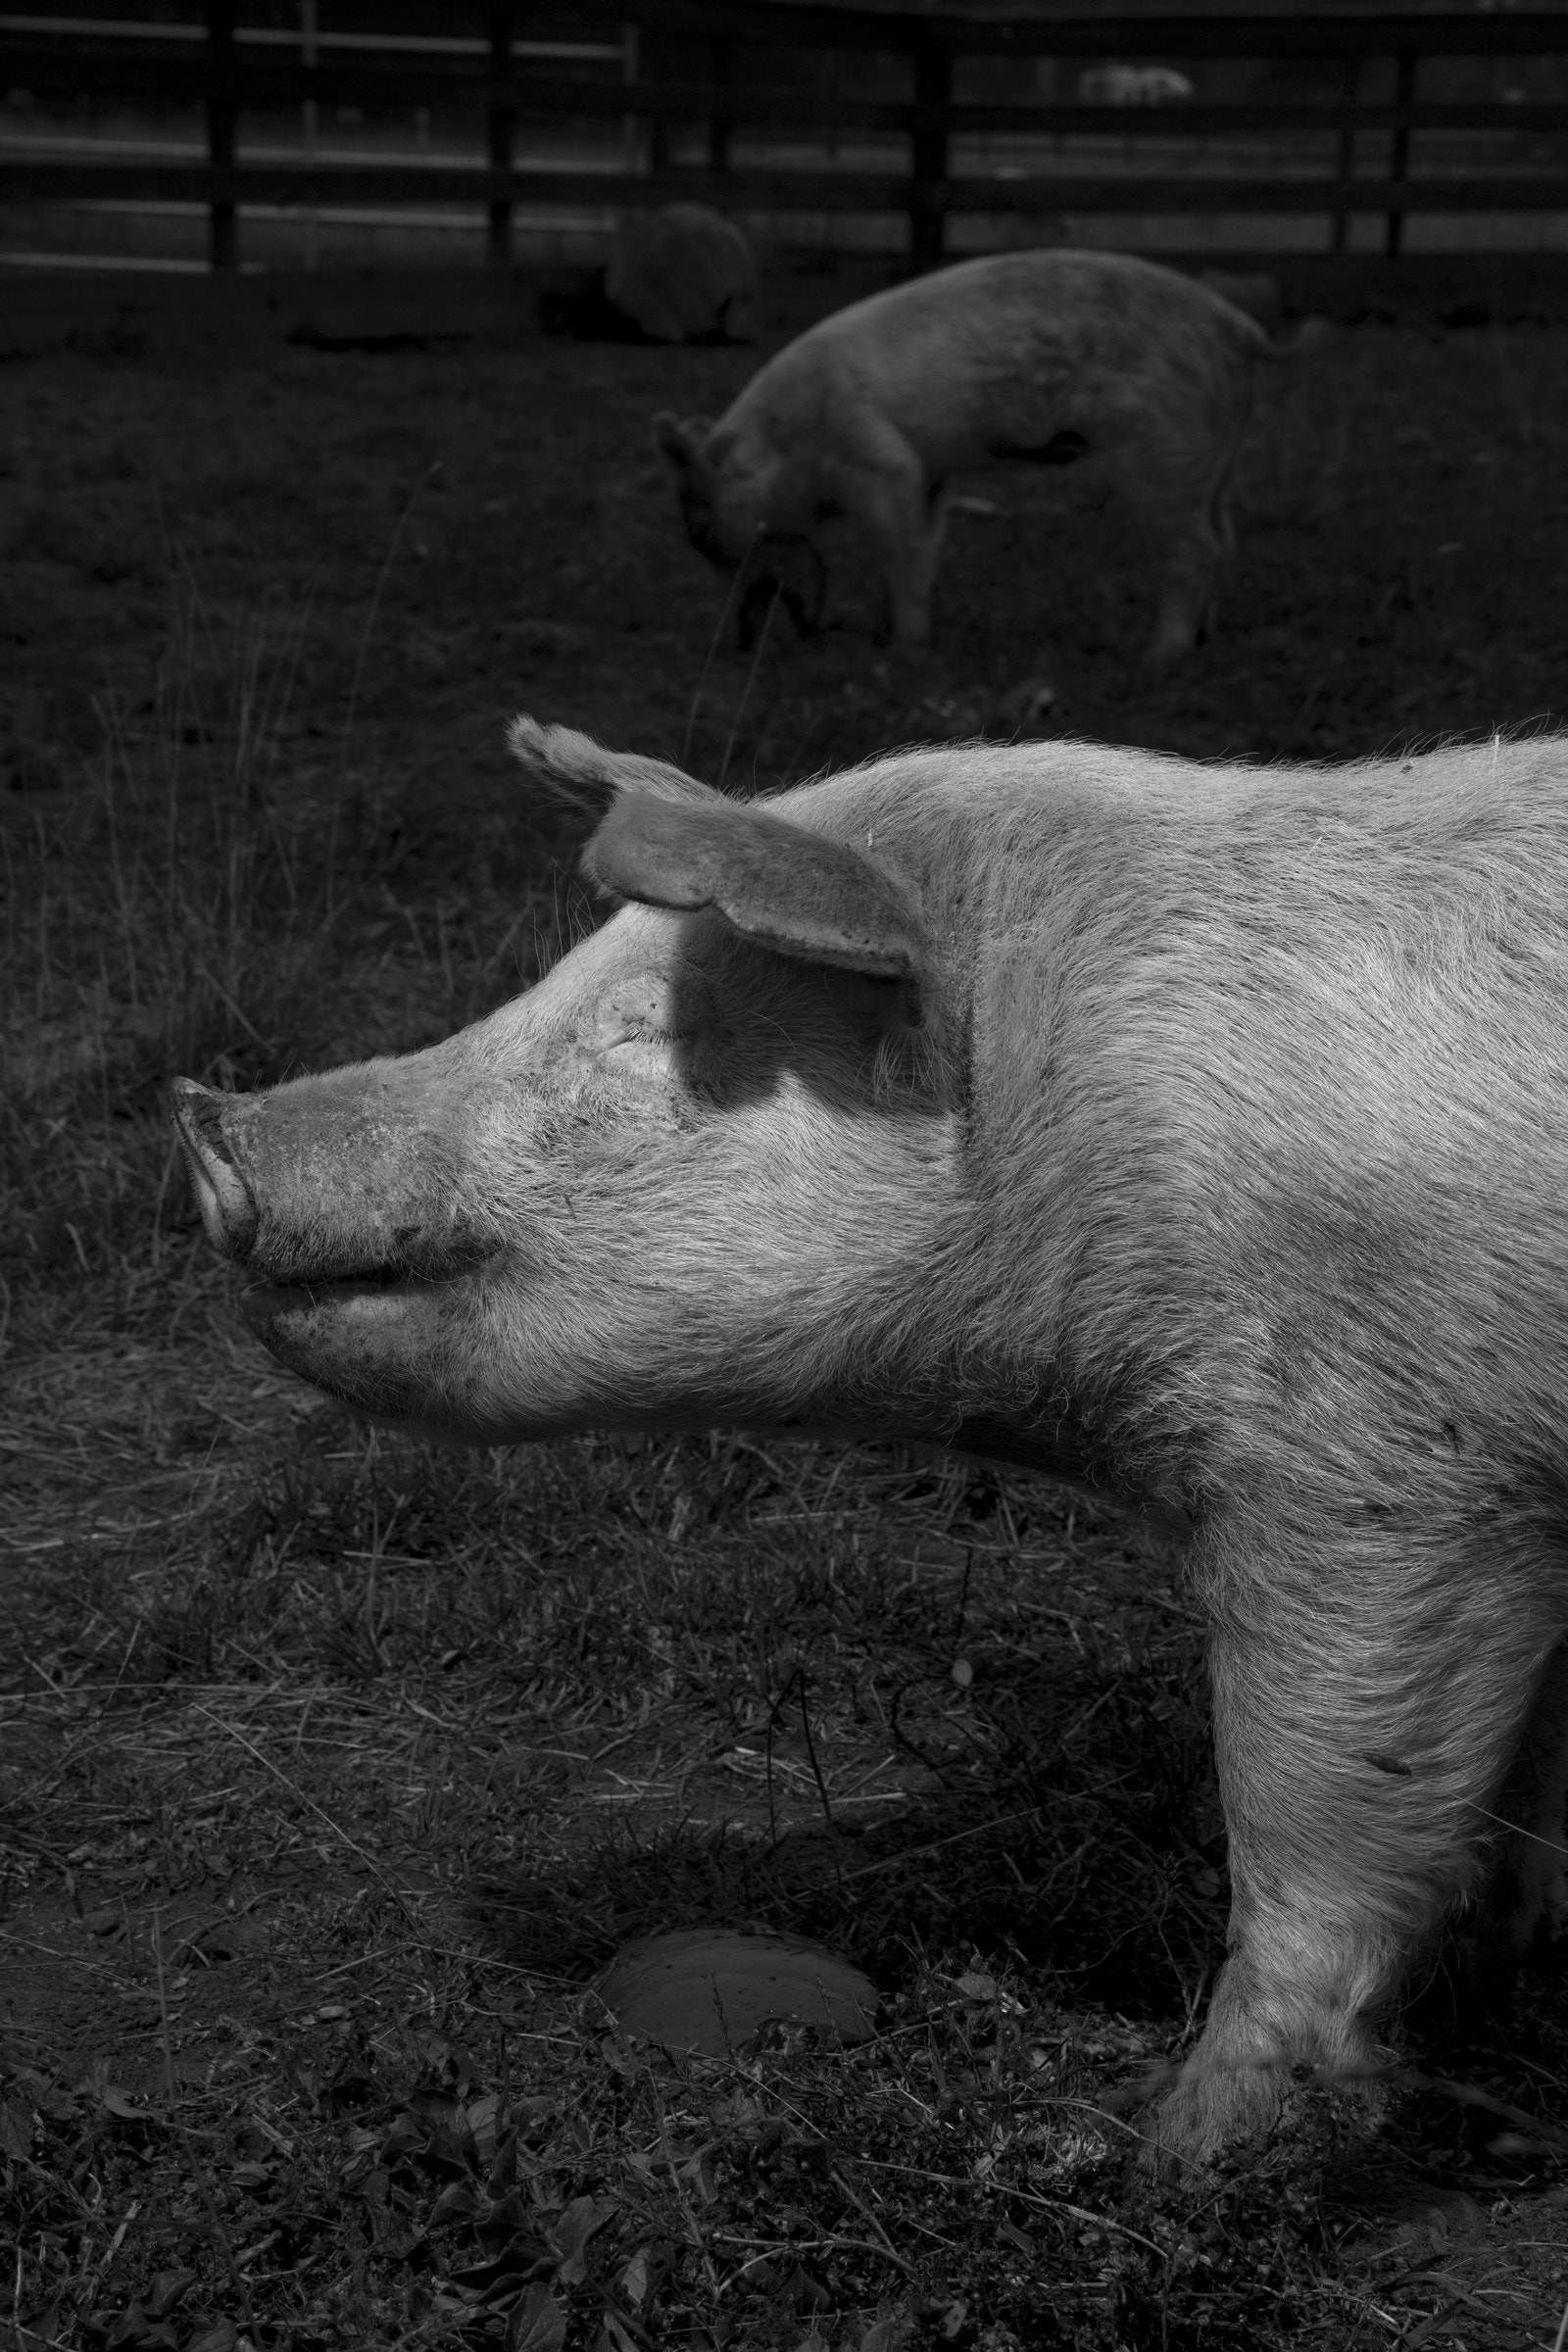 a pig on a sanctuary farm for rescue animals